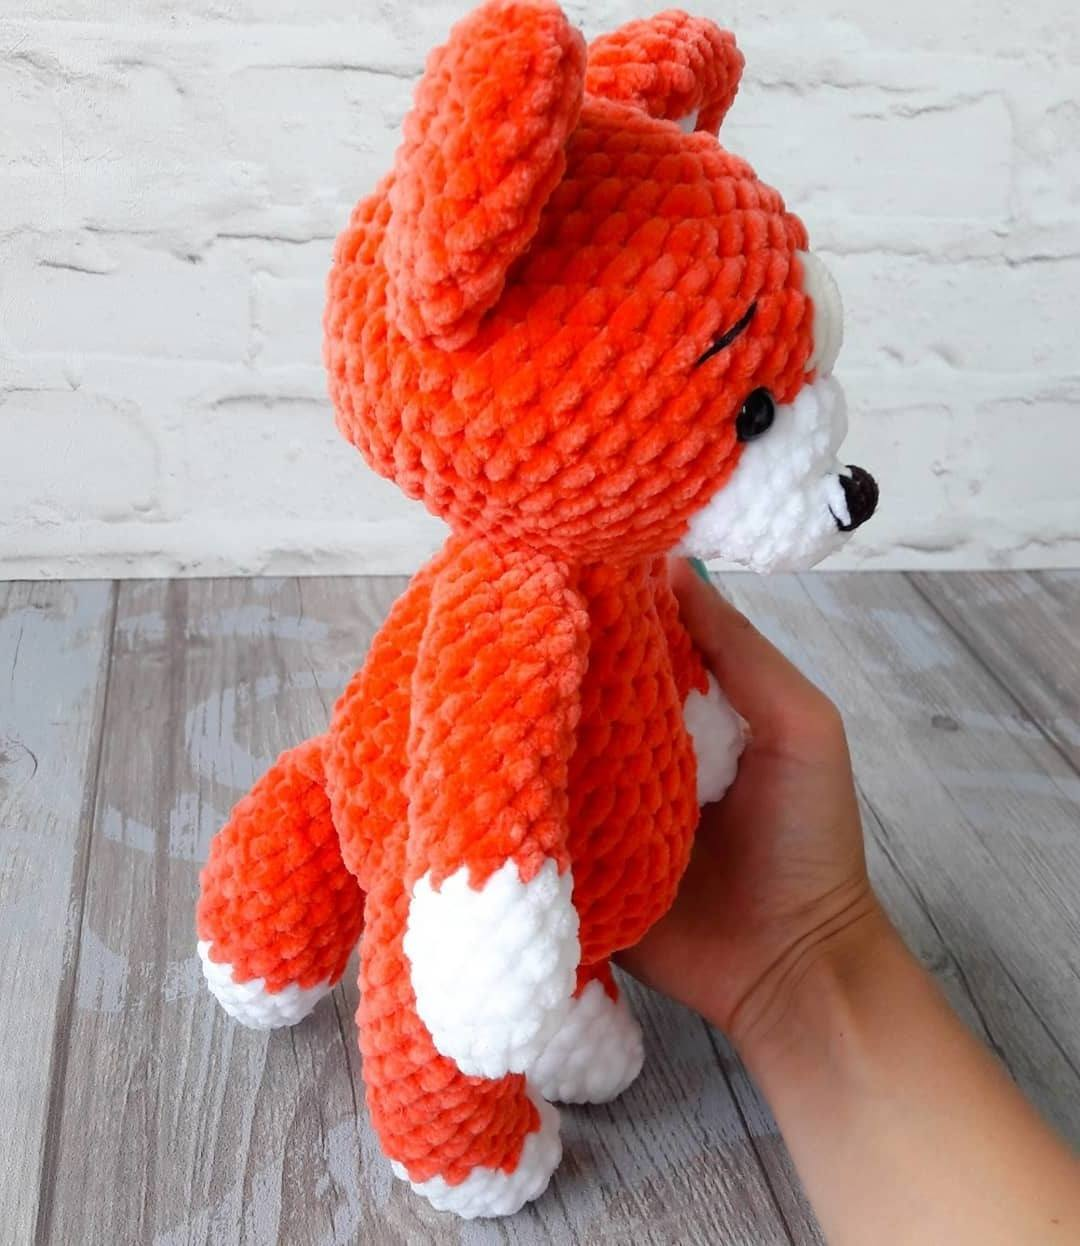 Crochet fox amigurumi toy